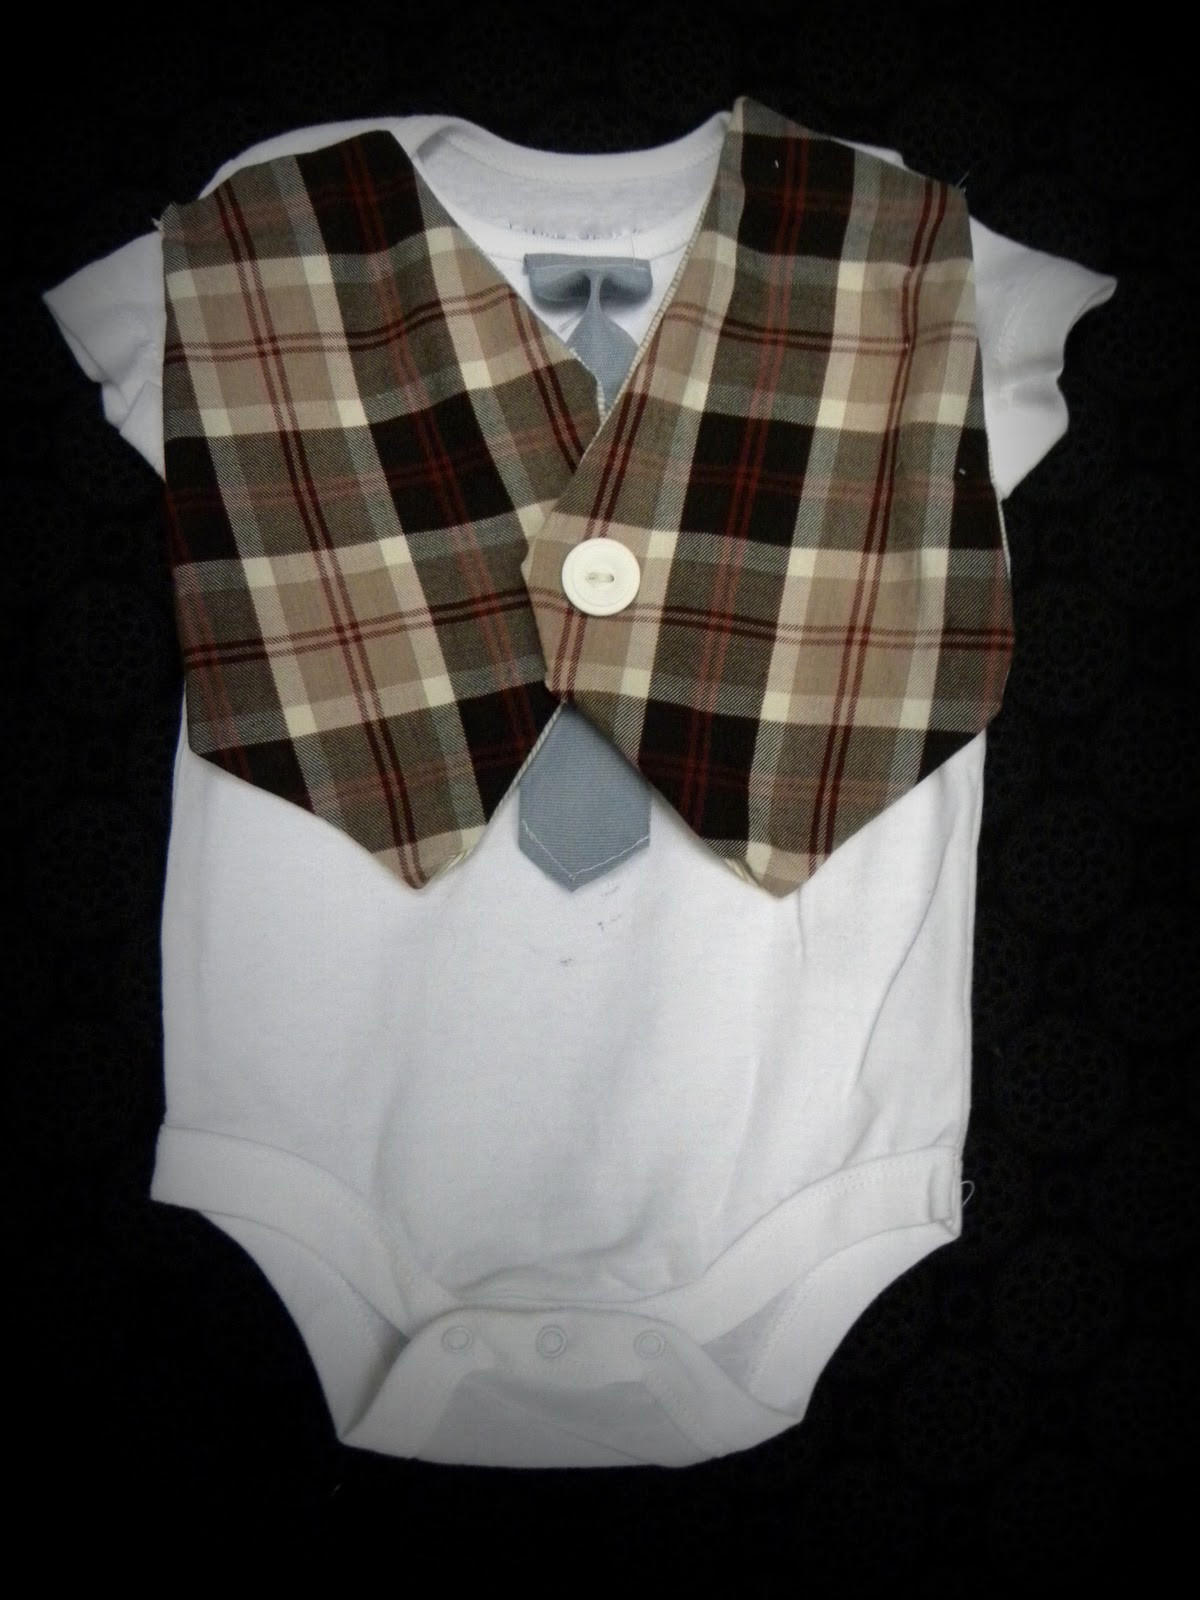 Best ideas about DIY Baby Onesies . Save or Pin Crafting Made Simple DIY baby onesie vest Now.